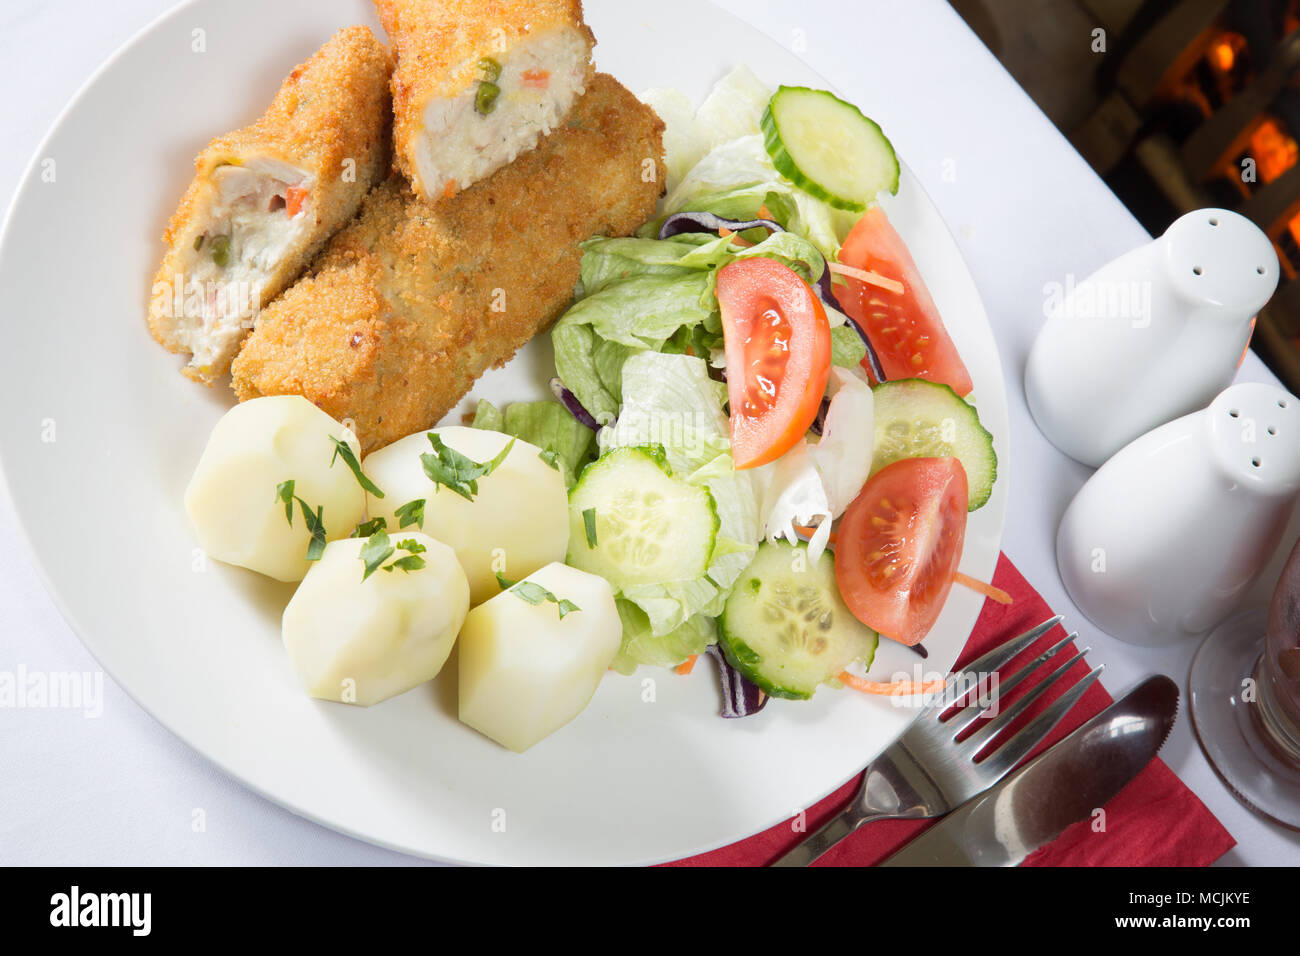 An English pub meal of deep fried breaded Chicken and vegetable rissoles with boiled potatoes and mixed salad - Stock Image